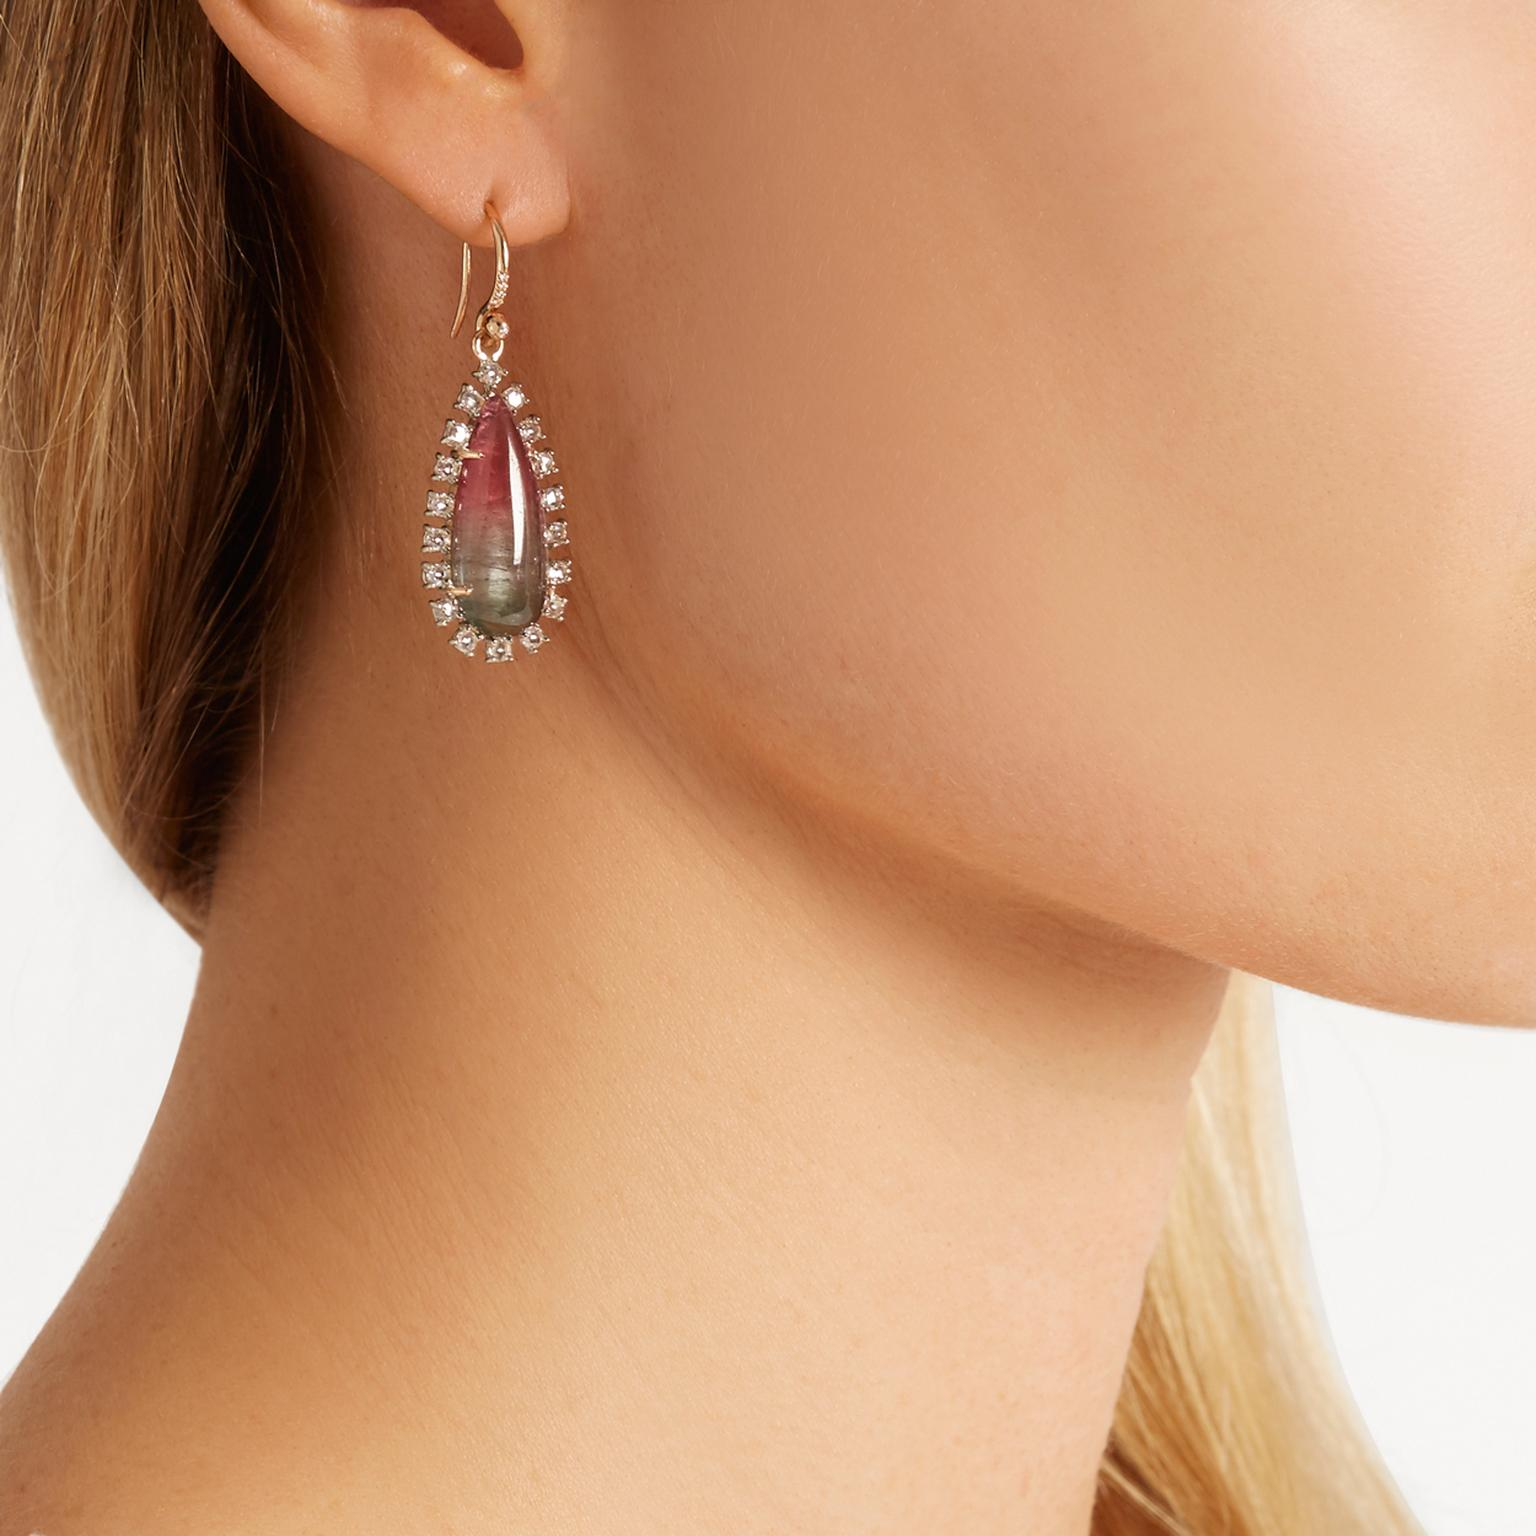 Irene Neuwirth watermelon tourmaline earrings